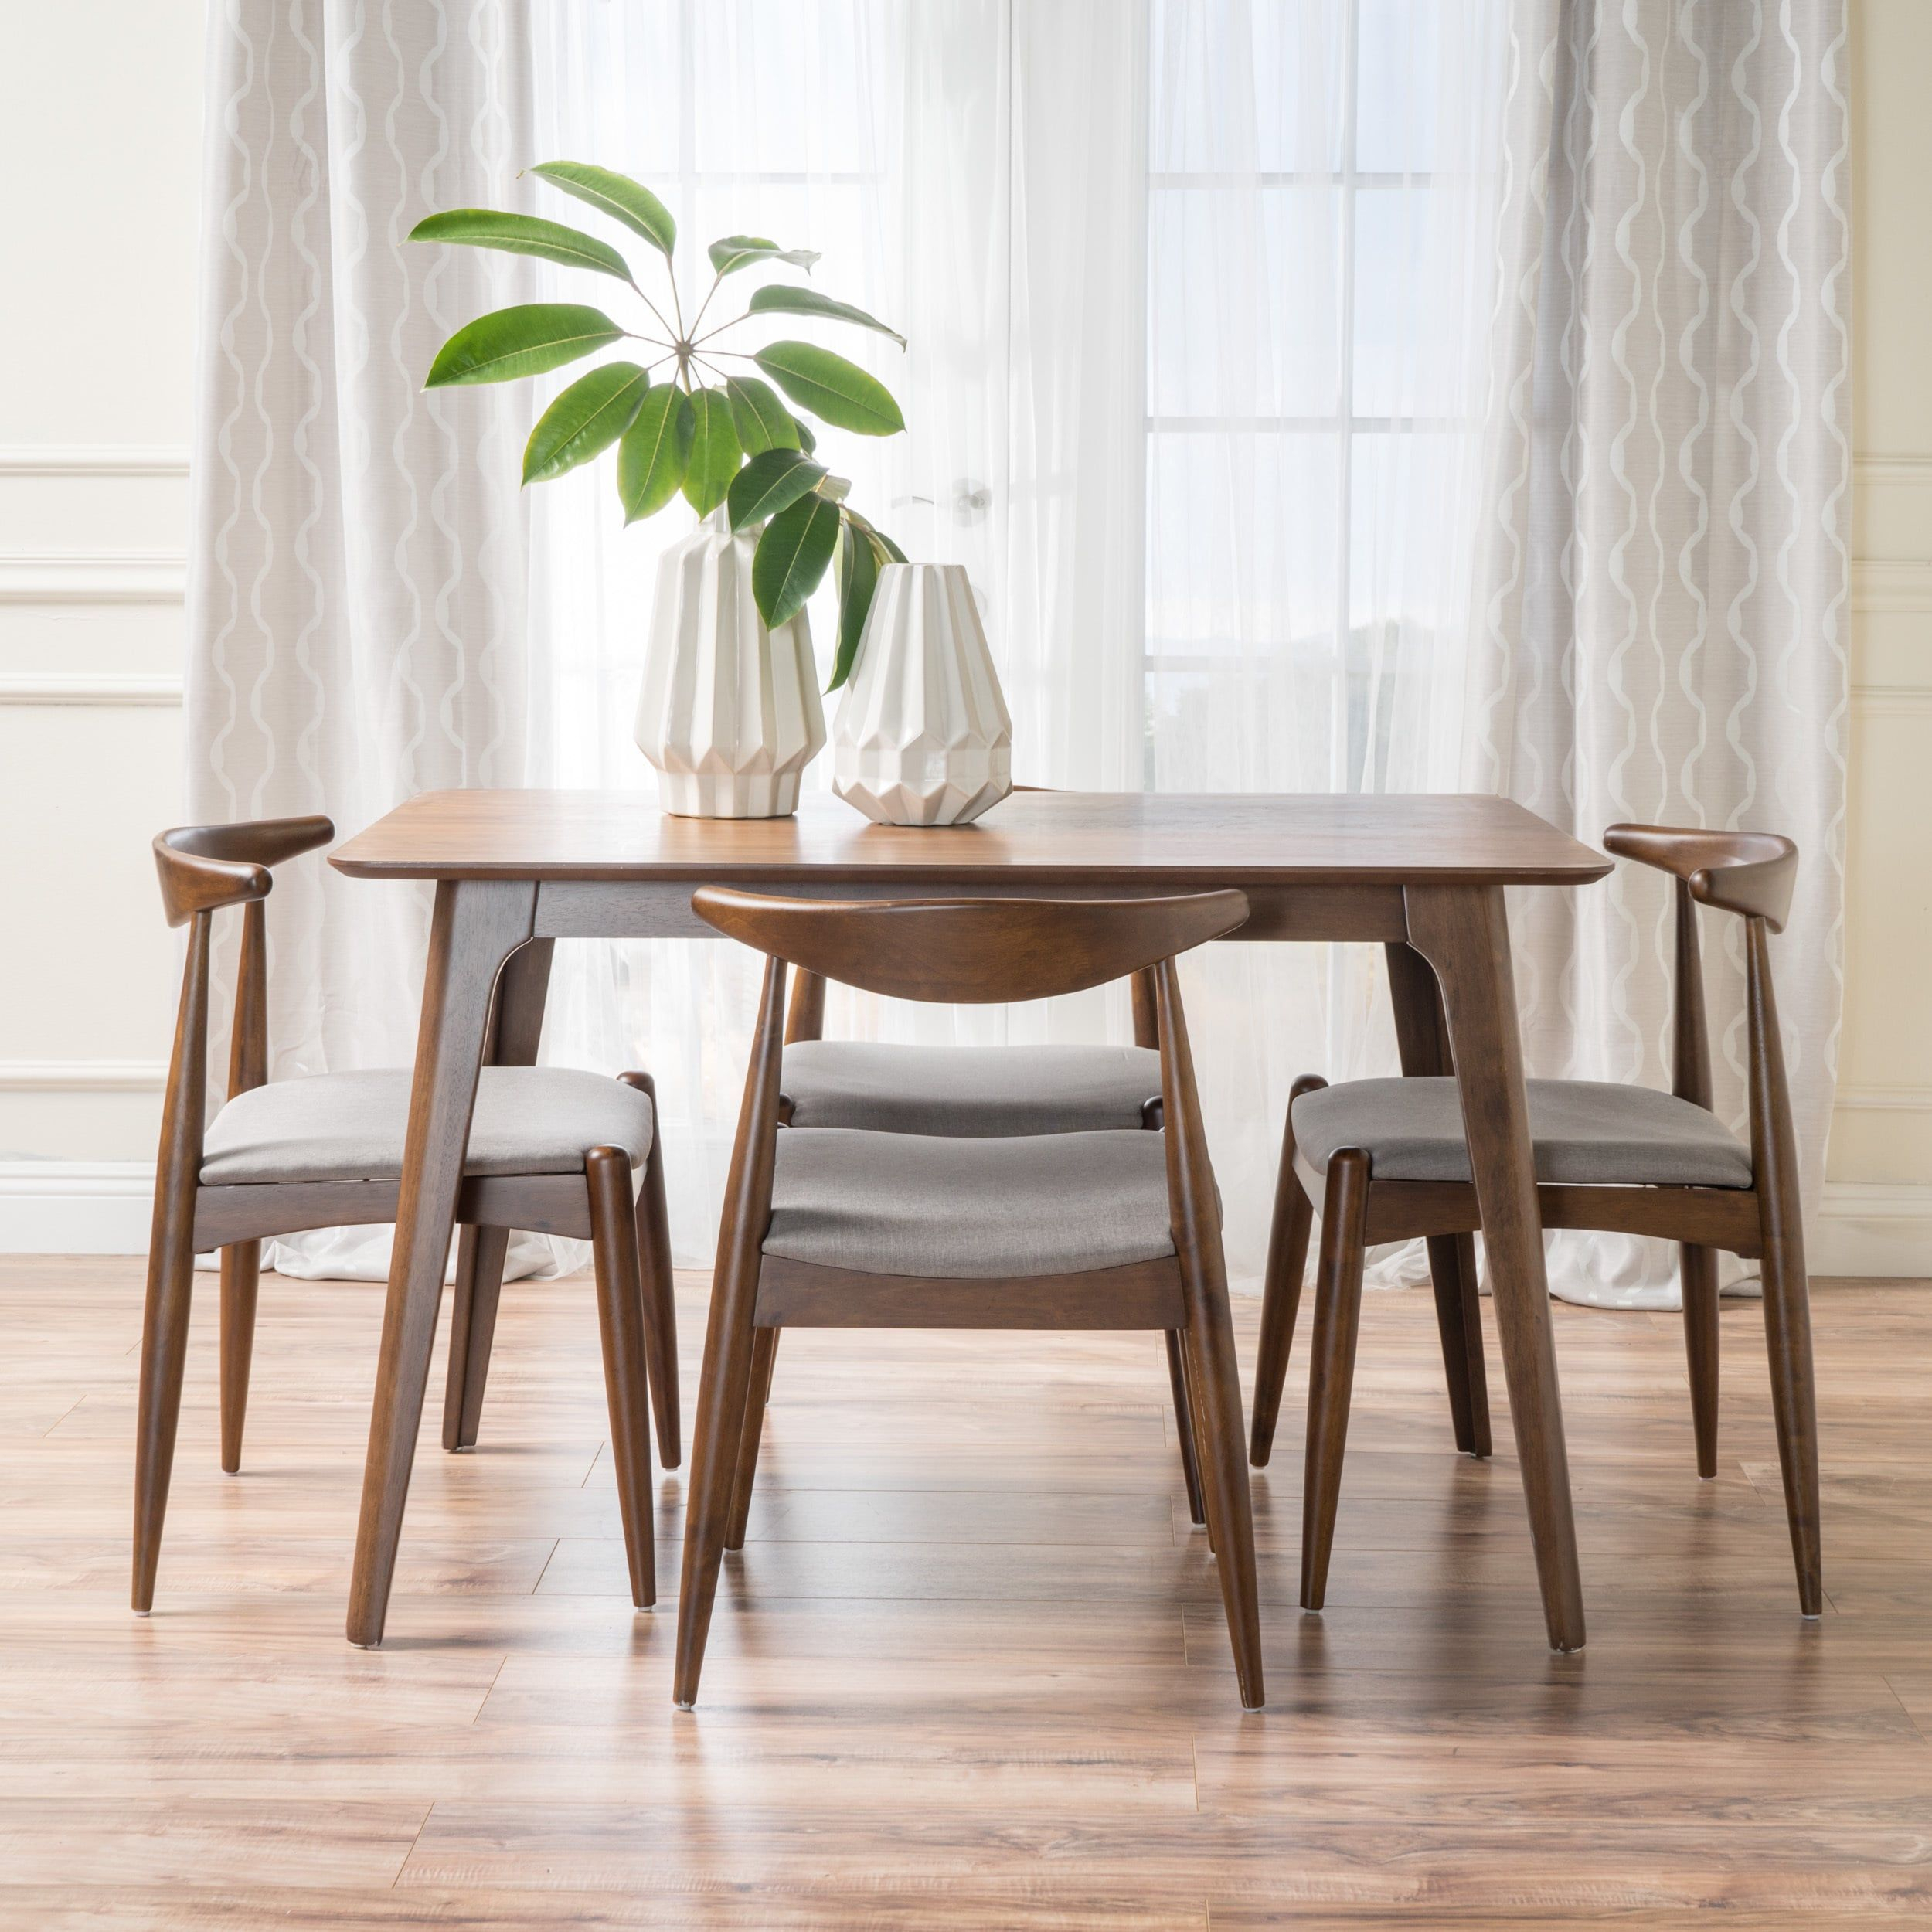 Francie Mid Century 5 Piece Large Wood Rectangular Dining Set Within Most Up To Date Autberry 5 Piece Dining Sets (Image 11 of 20)